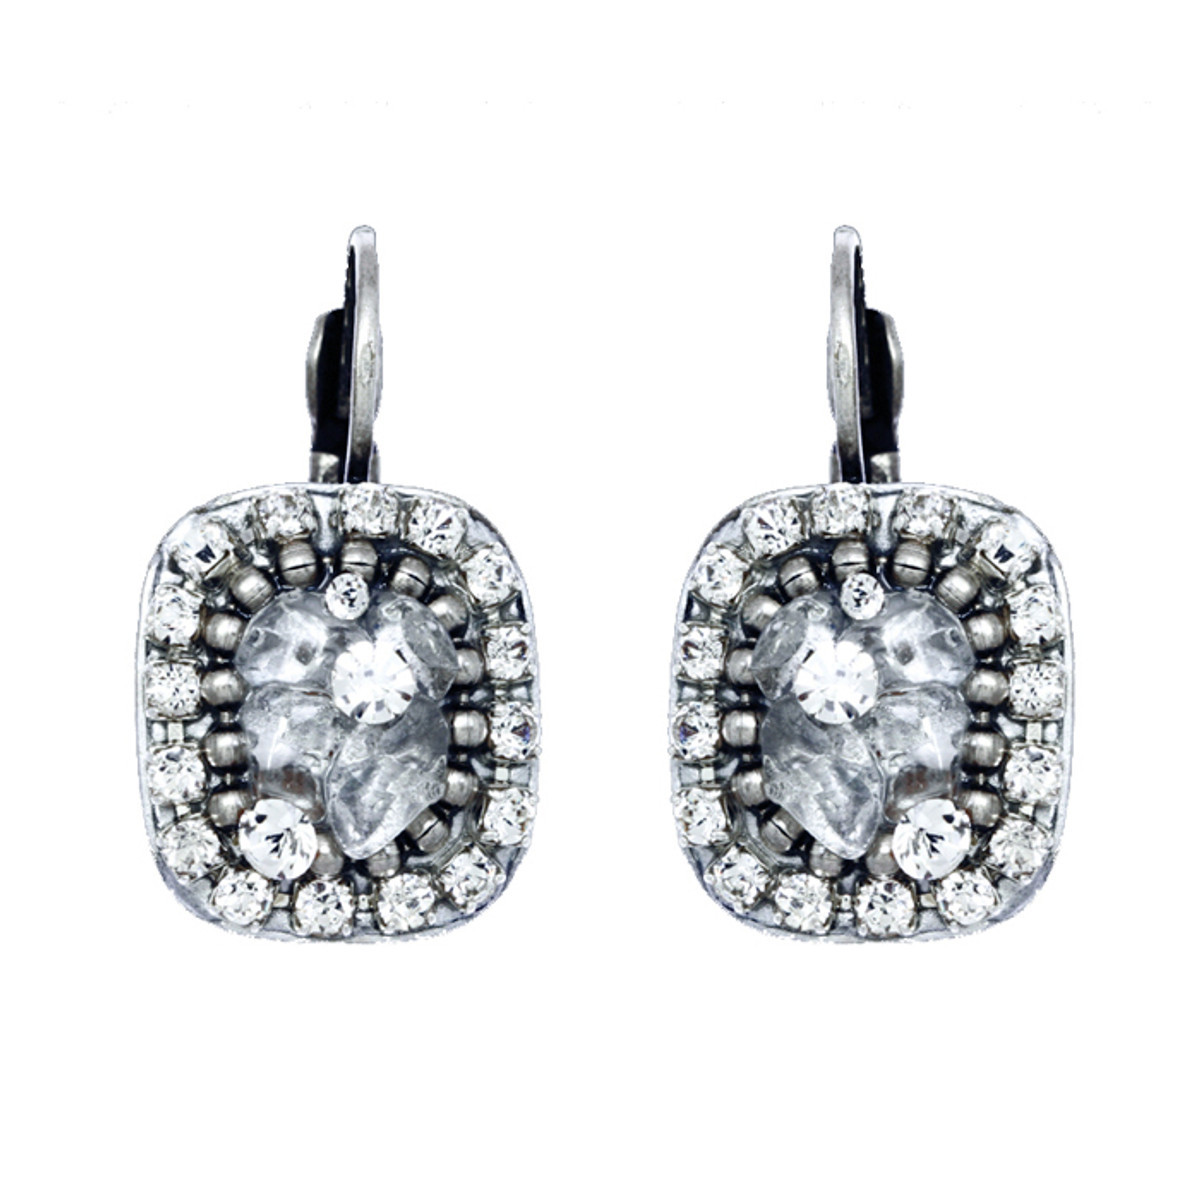 ichal Golan Icy Dreams Square Lever Earrings